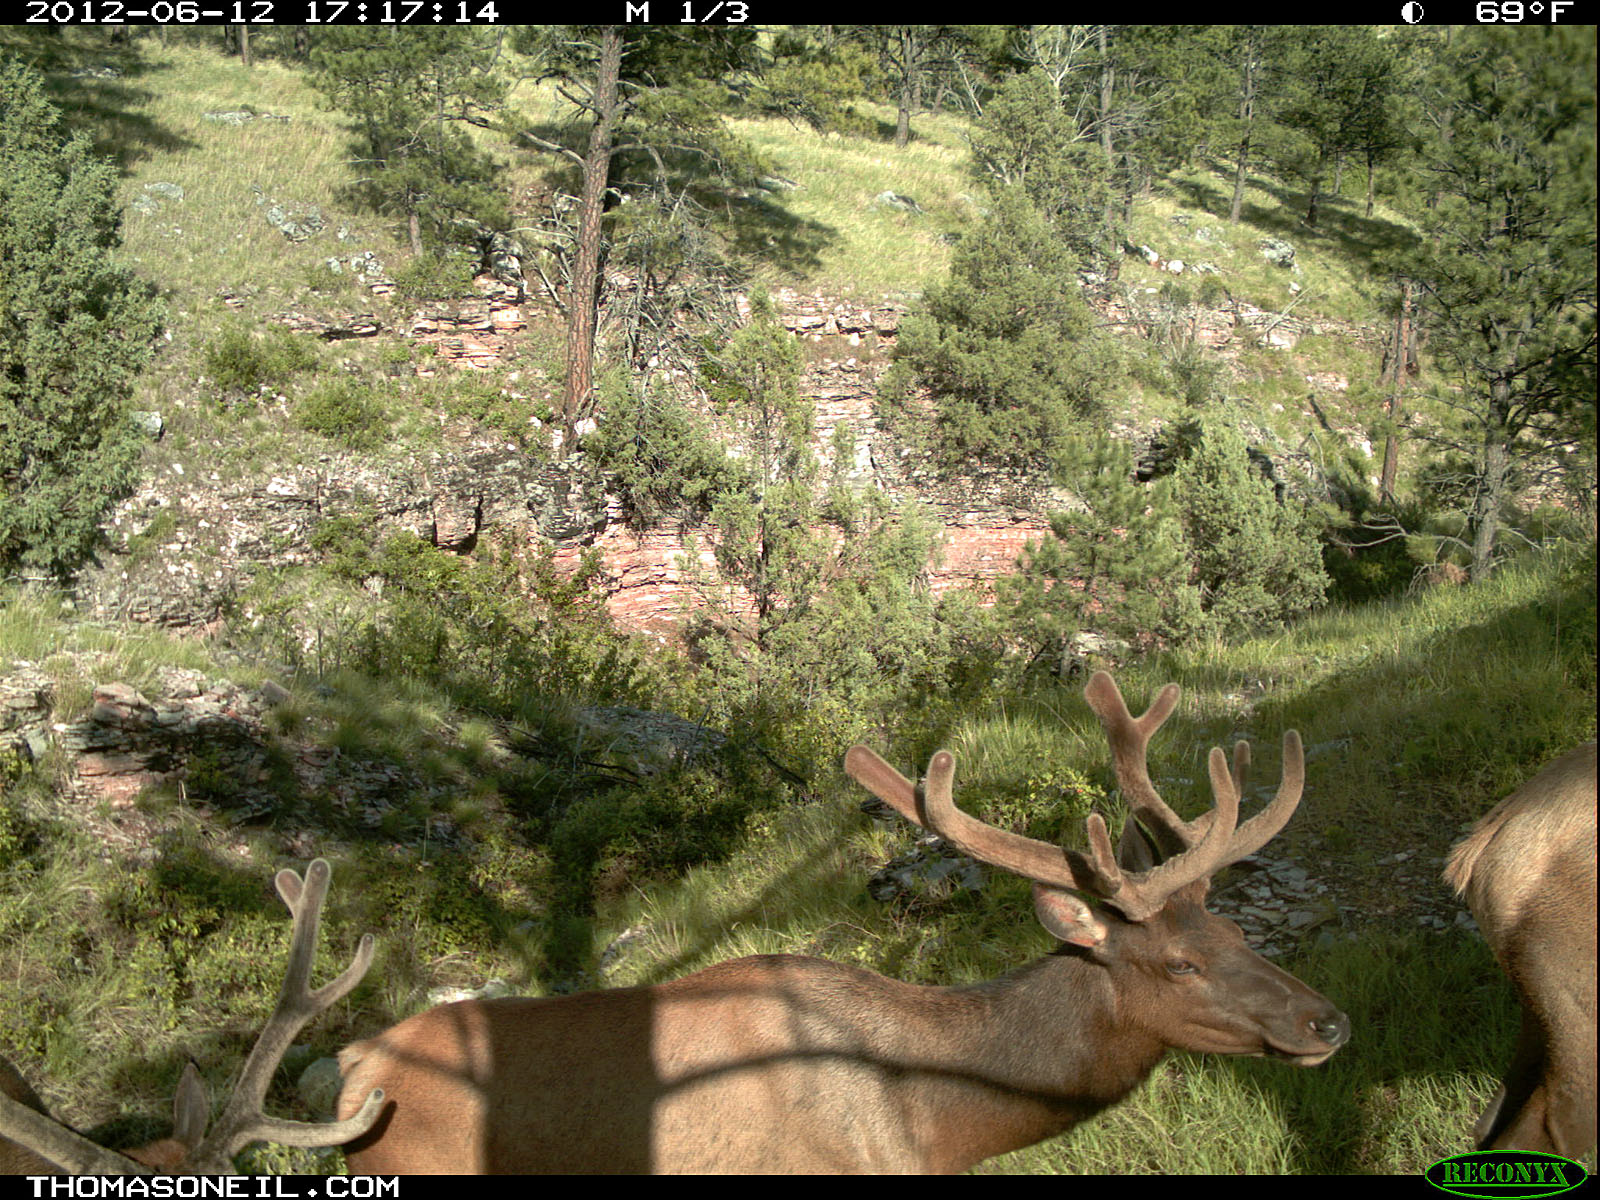 Trailcam picture of elk, Wind Cave National Park, June 12.